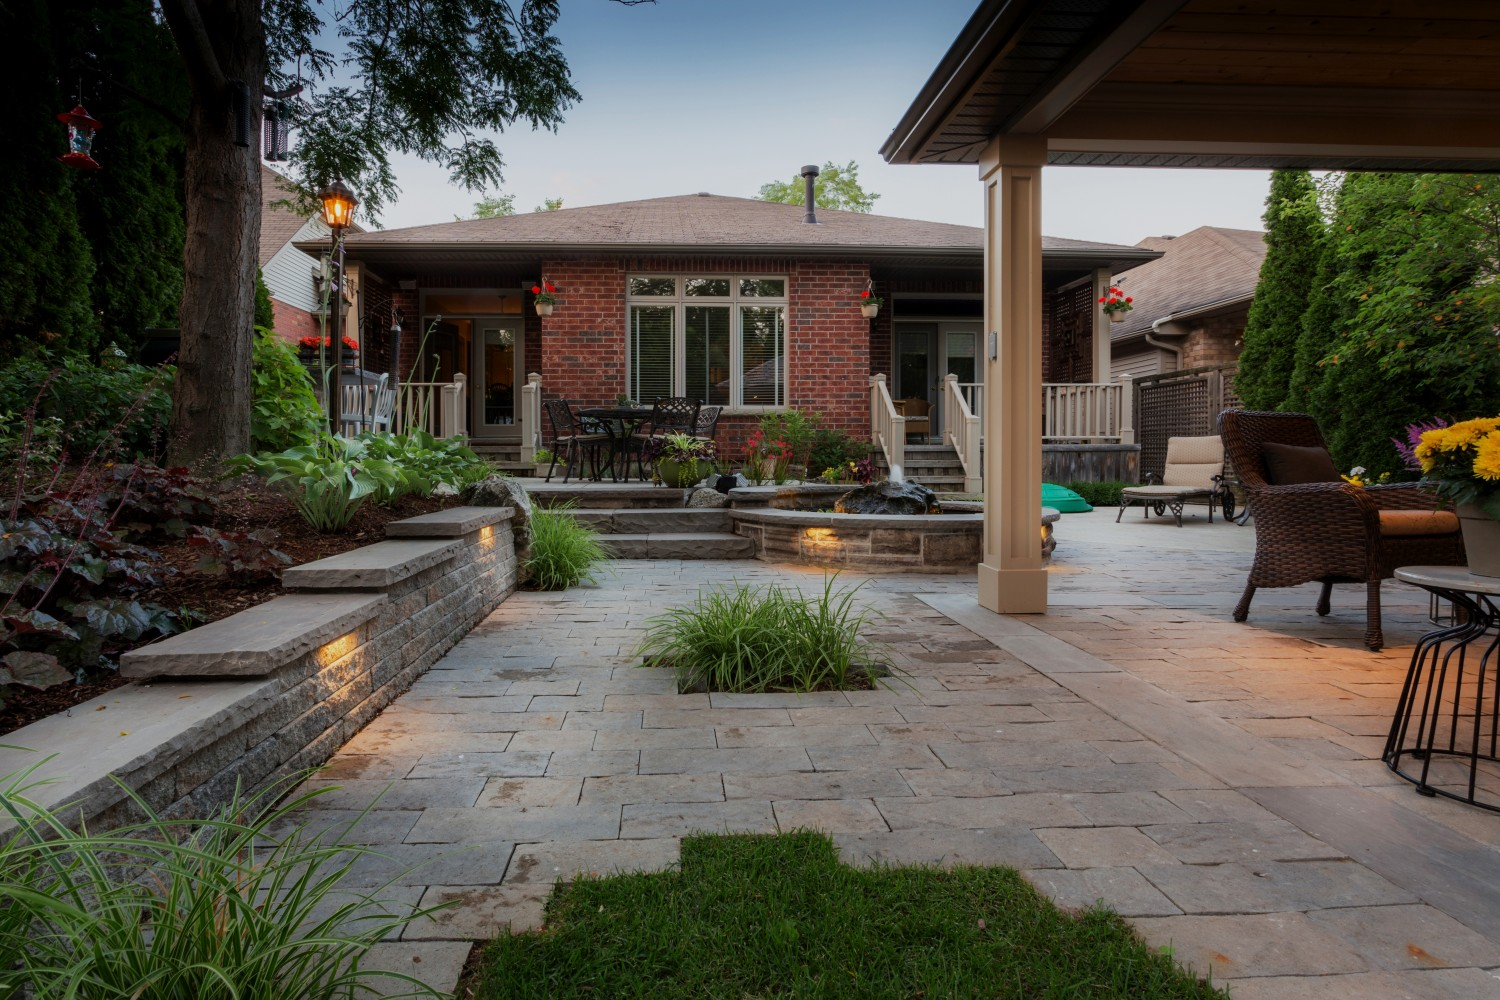 Patios  Oakville & Burlington Landscaping. Plastic Patio Furniture Florida. Outdoor Kitchen And Patio Ideas. Windflower Patio Collection. Restaurant Le Patio Poitiers. Pool And Patio Furniture Rochester Ny. Scottsdale House Patio Homes. Clearance Patio Furniture Sectional. Aluminum Patio Covers Vernon Bc